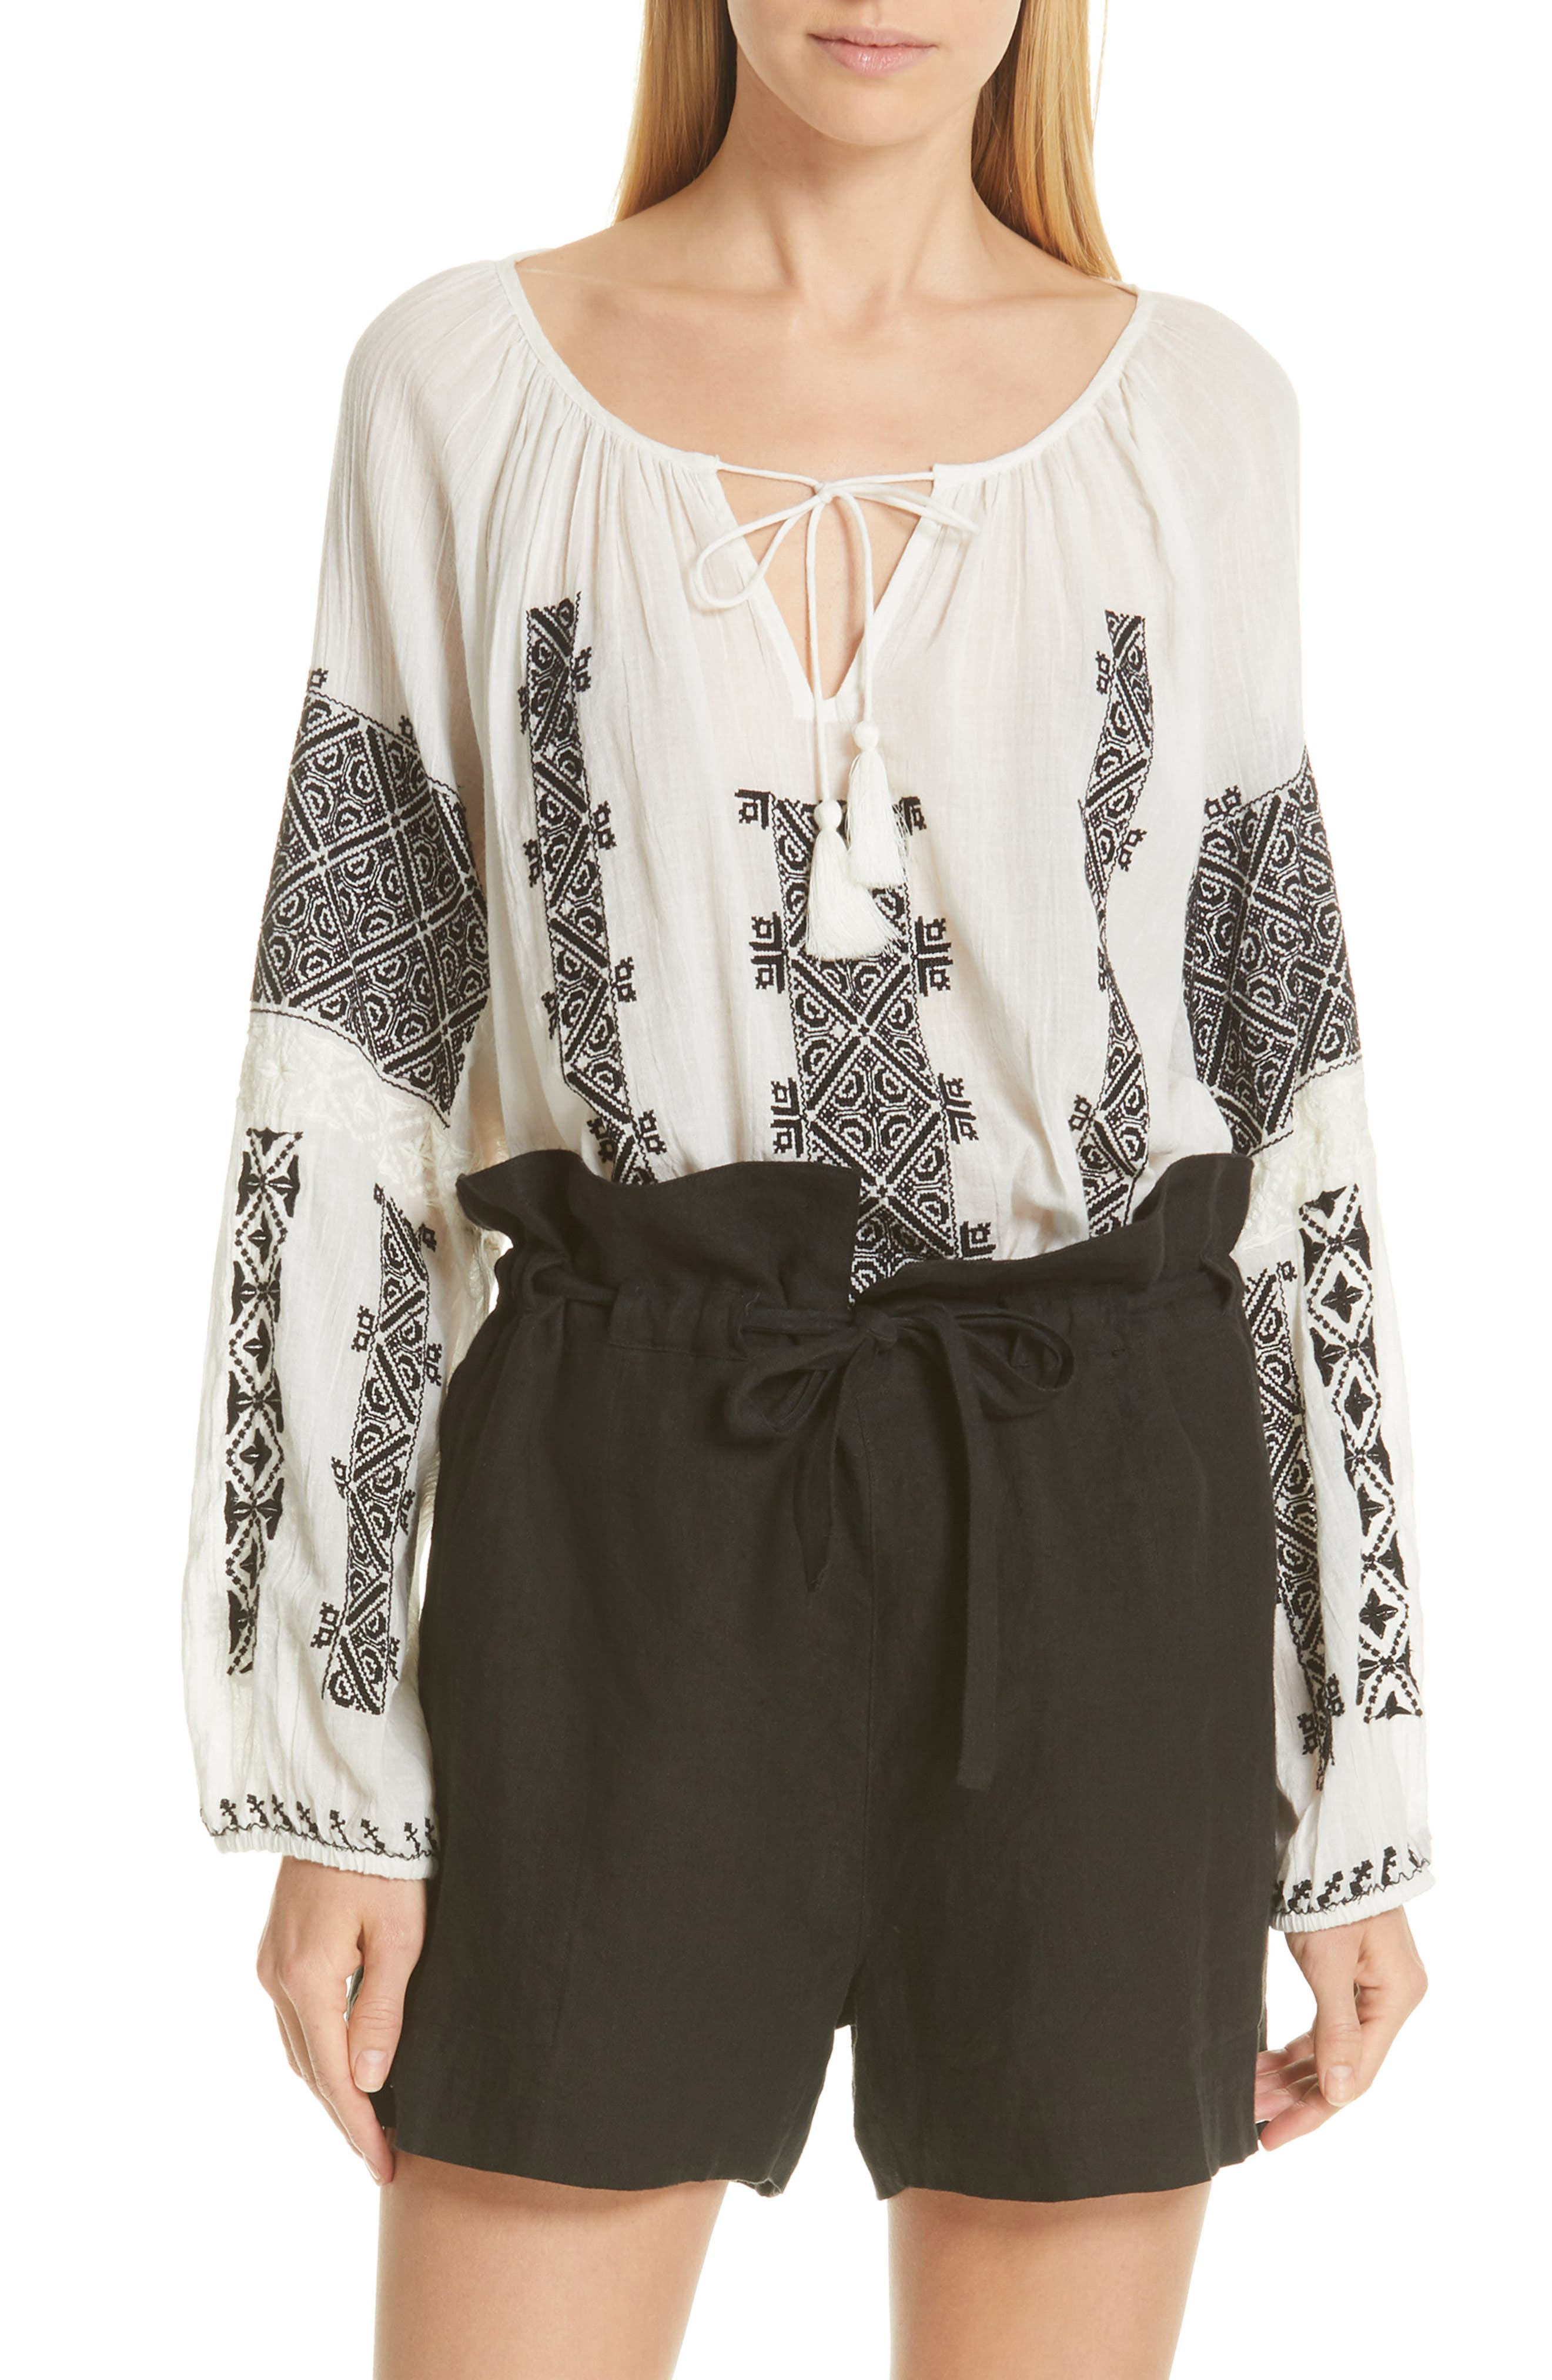 NILI LOTAN, Alassio Embroidered Blouse, Main thumbnail 1, color, IVORY WITH BLACK EMBROIDERY